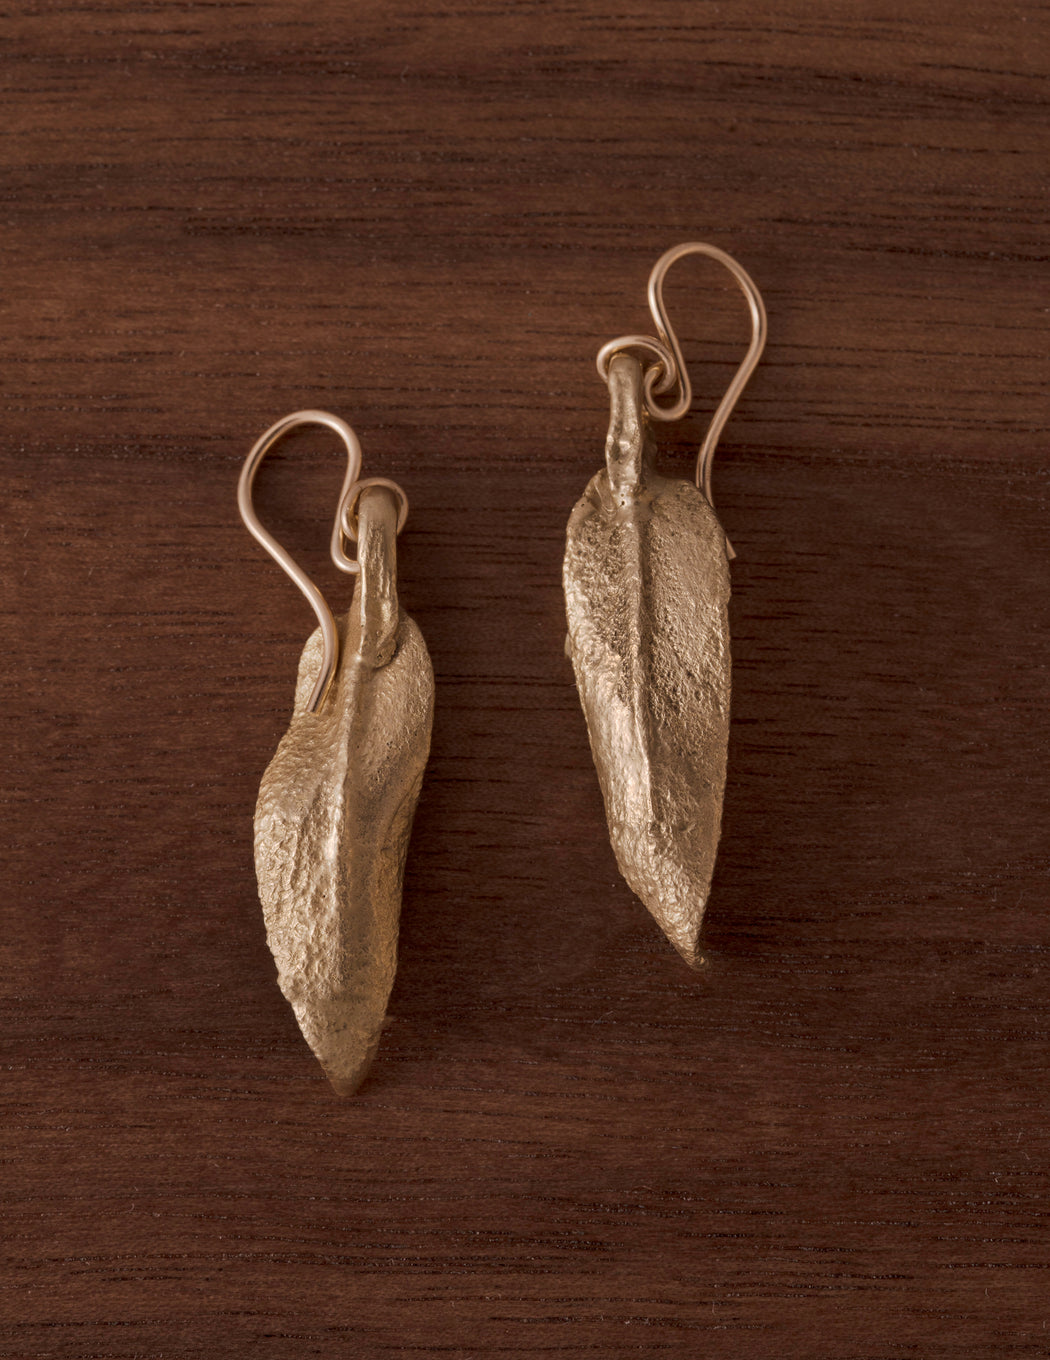 Sage Wisdom Earrings - Open Leaves